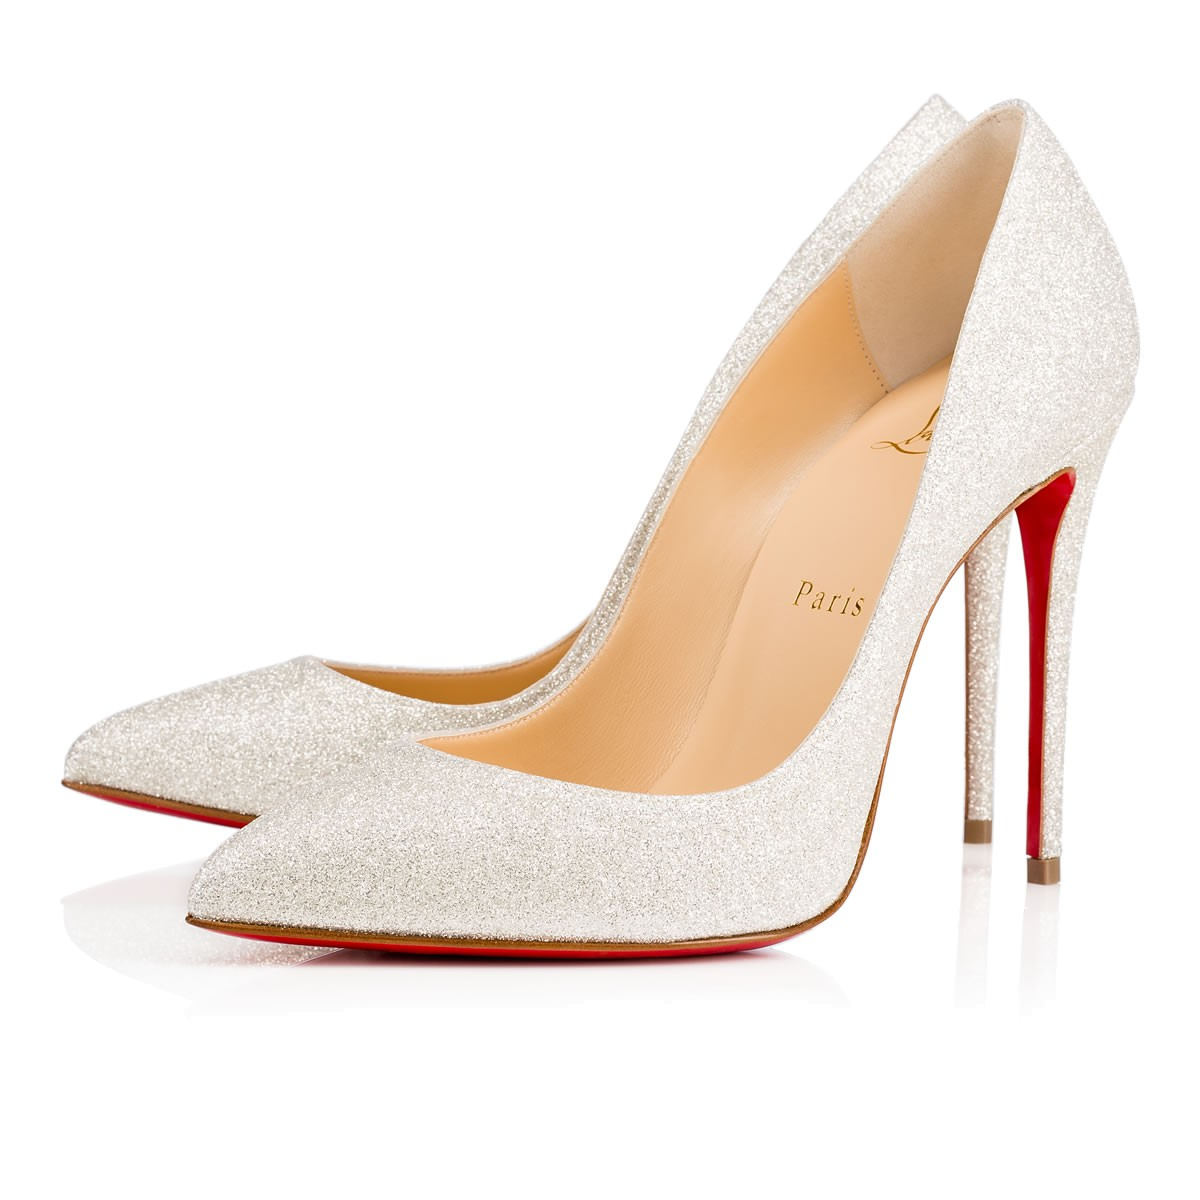 huge inventory 8cc62 e922b Pigalle Follies 100 Ivory Glitter Mini - Women Shoes - Christian Louboutin